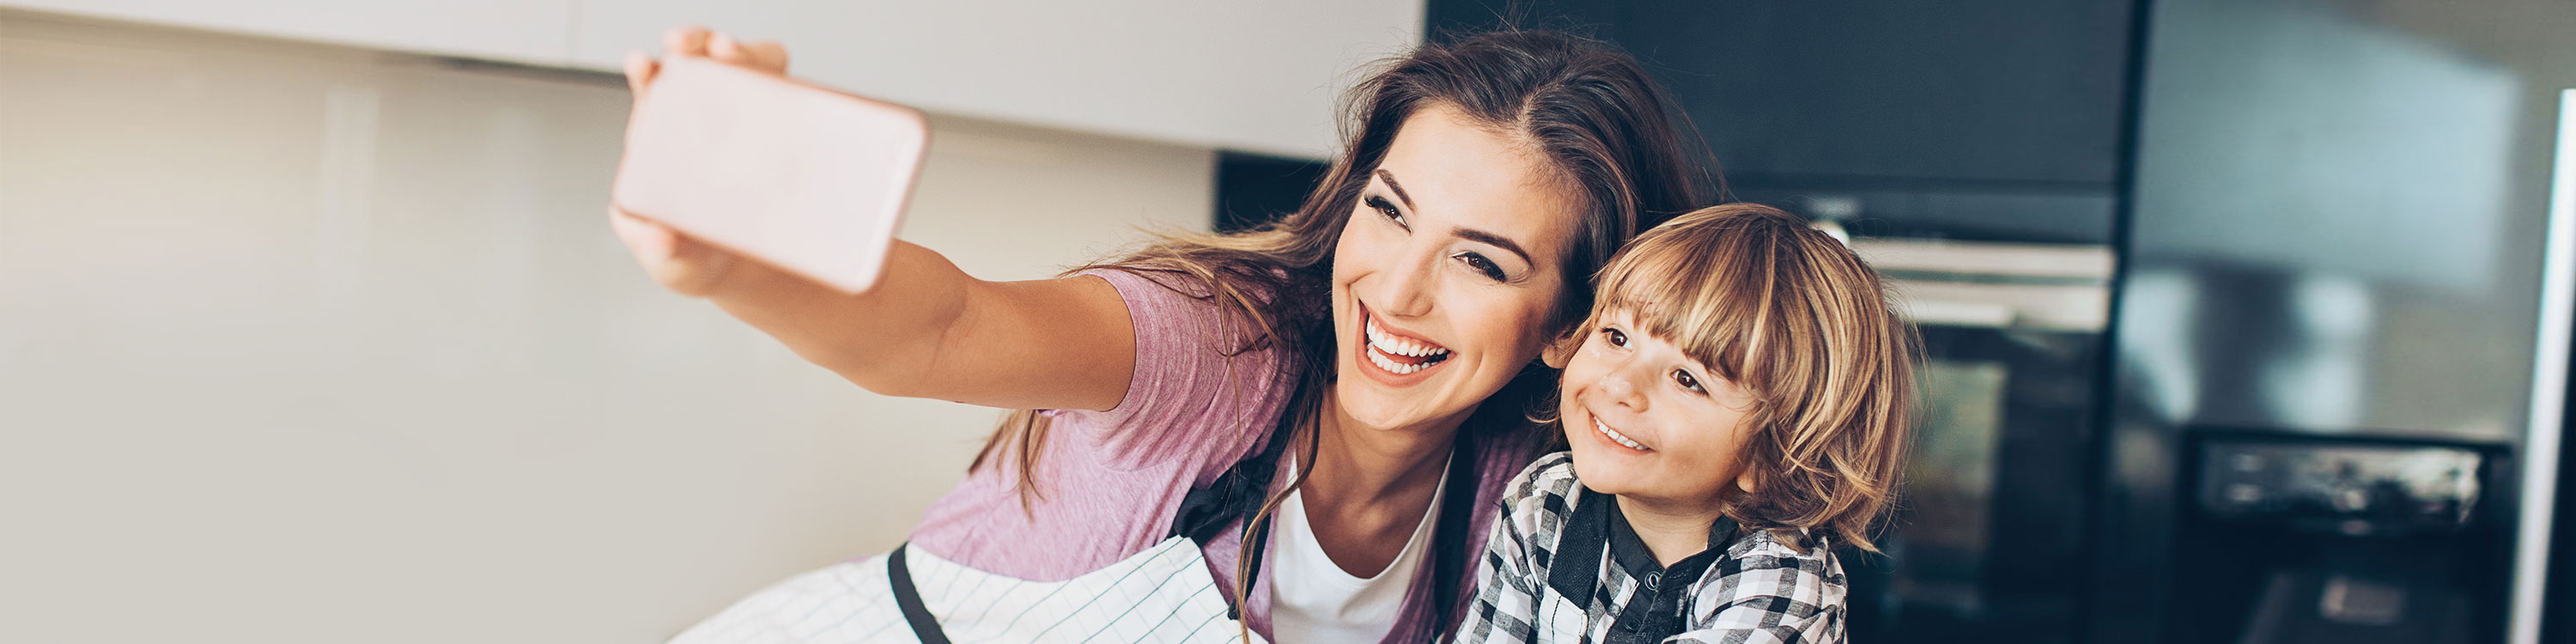 mother and child taking selfie